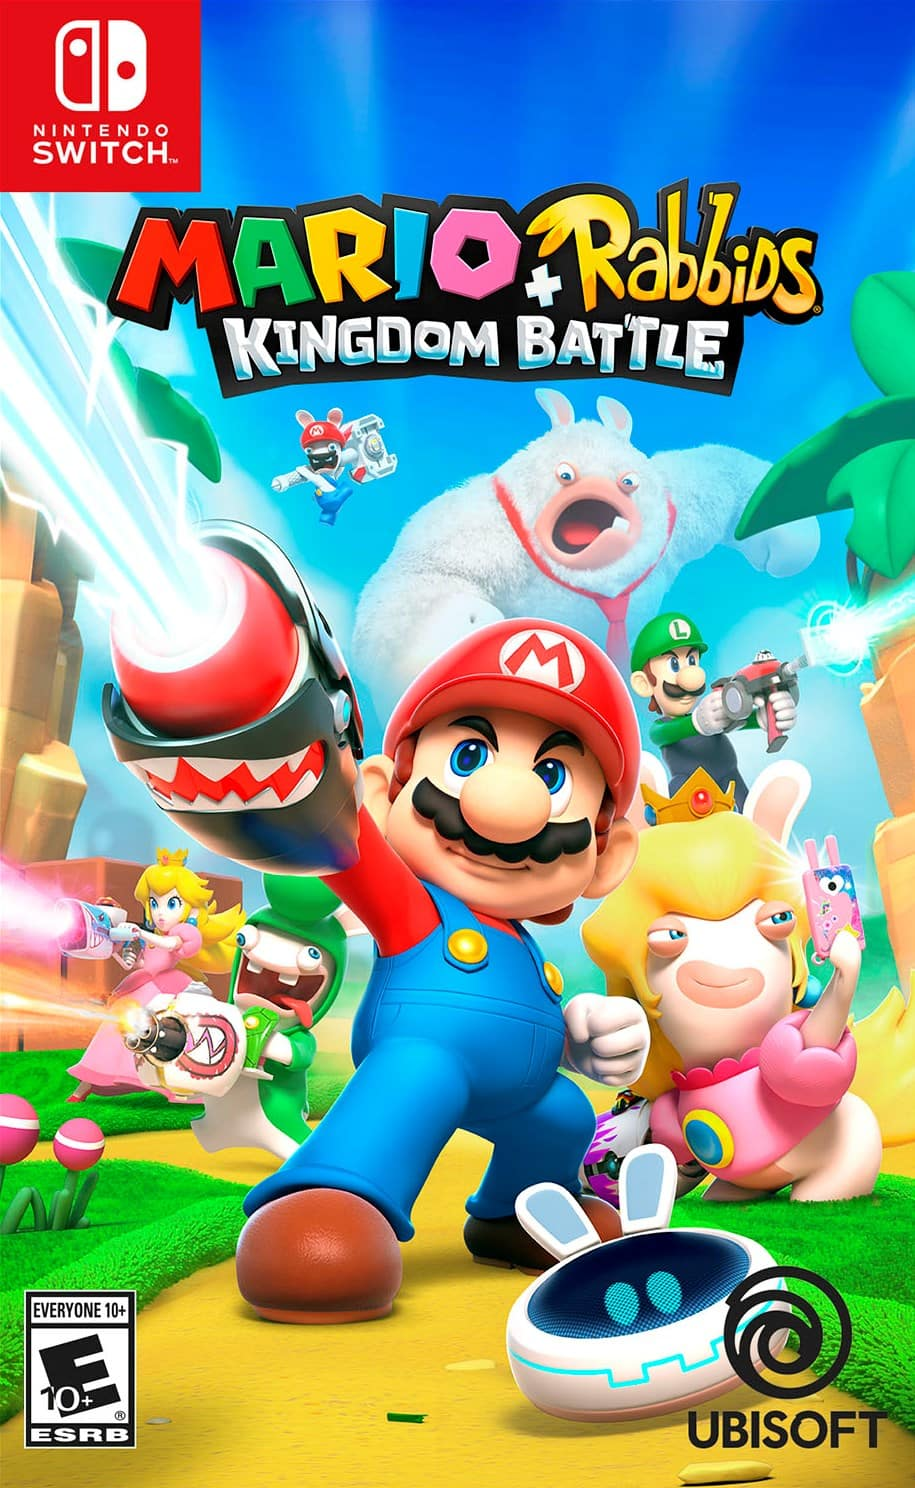 Mario + Rabbids Kingdom Battle - Nintendo Switch. $14.99 @ Best Buy